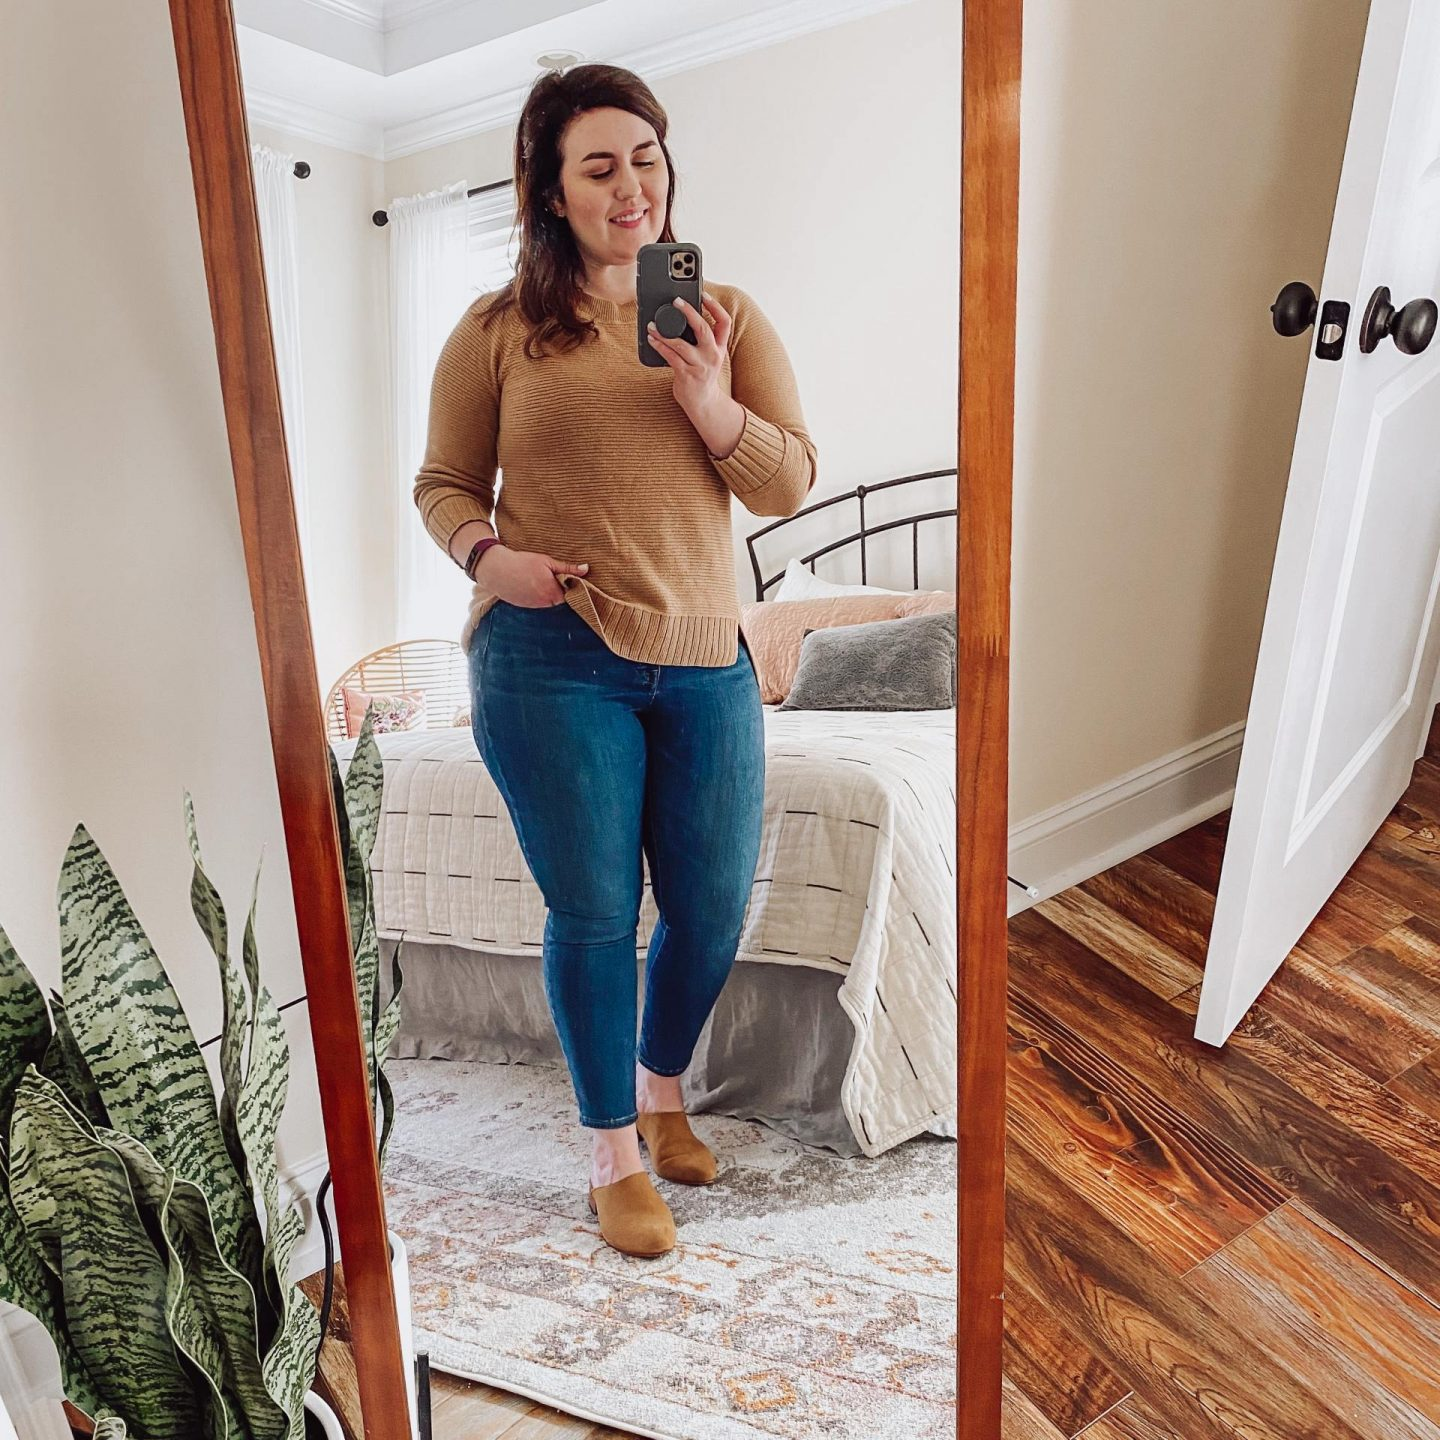 NC blogger Rebecca Lately is sharing her end of winter outfits. Check it out for transitional outfit inspiration as we head into spring!